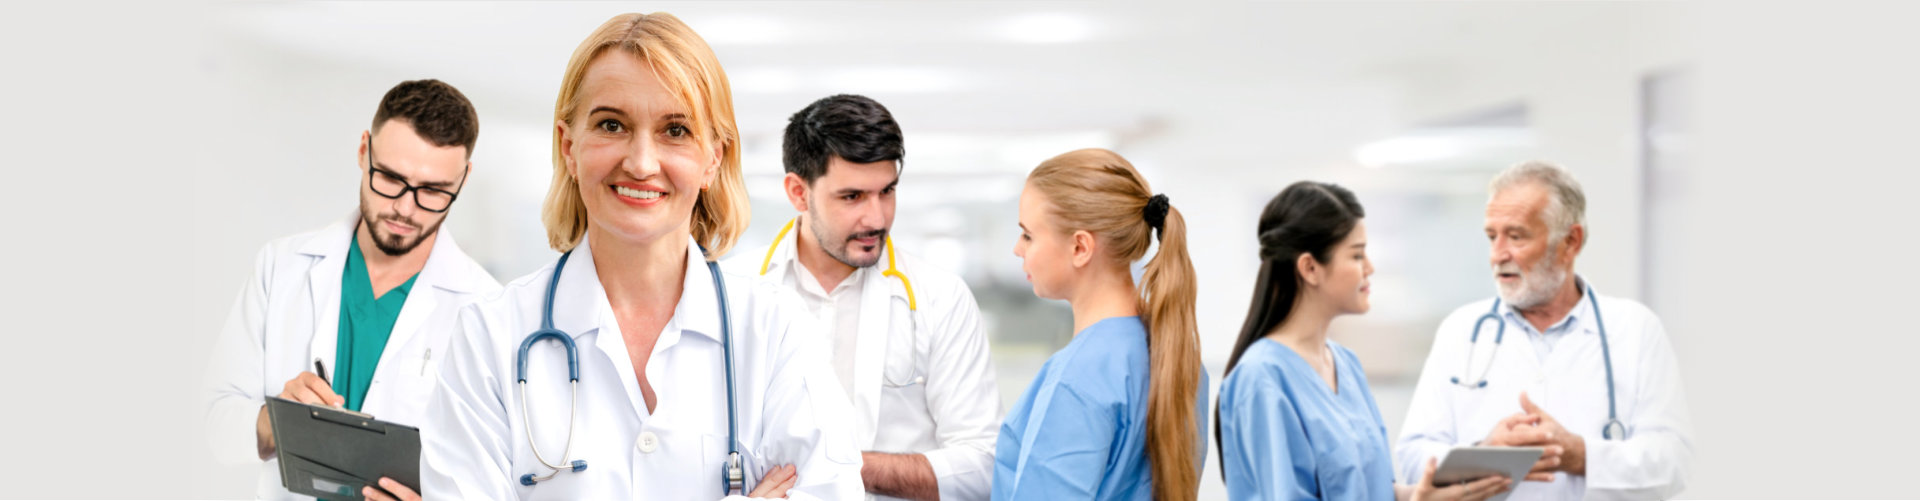 Professional doctor working in hospital office or clinic with other doctors